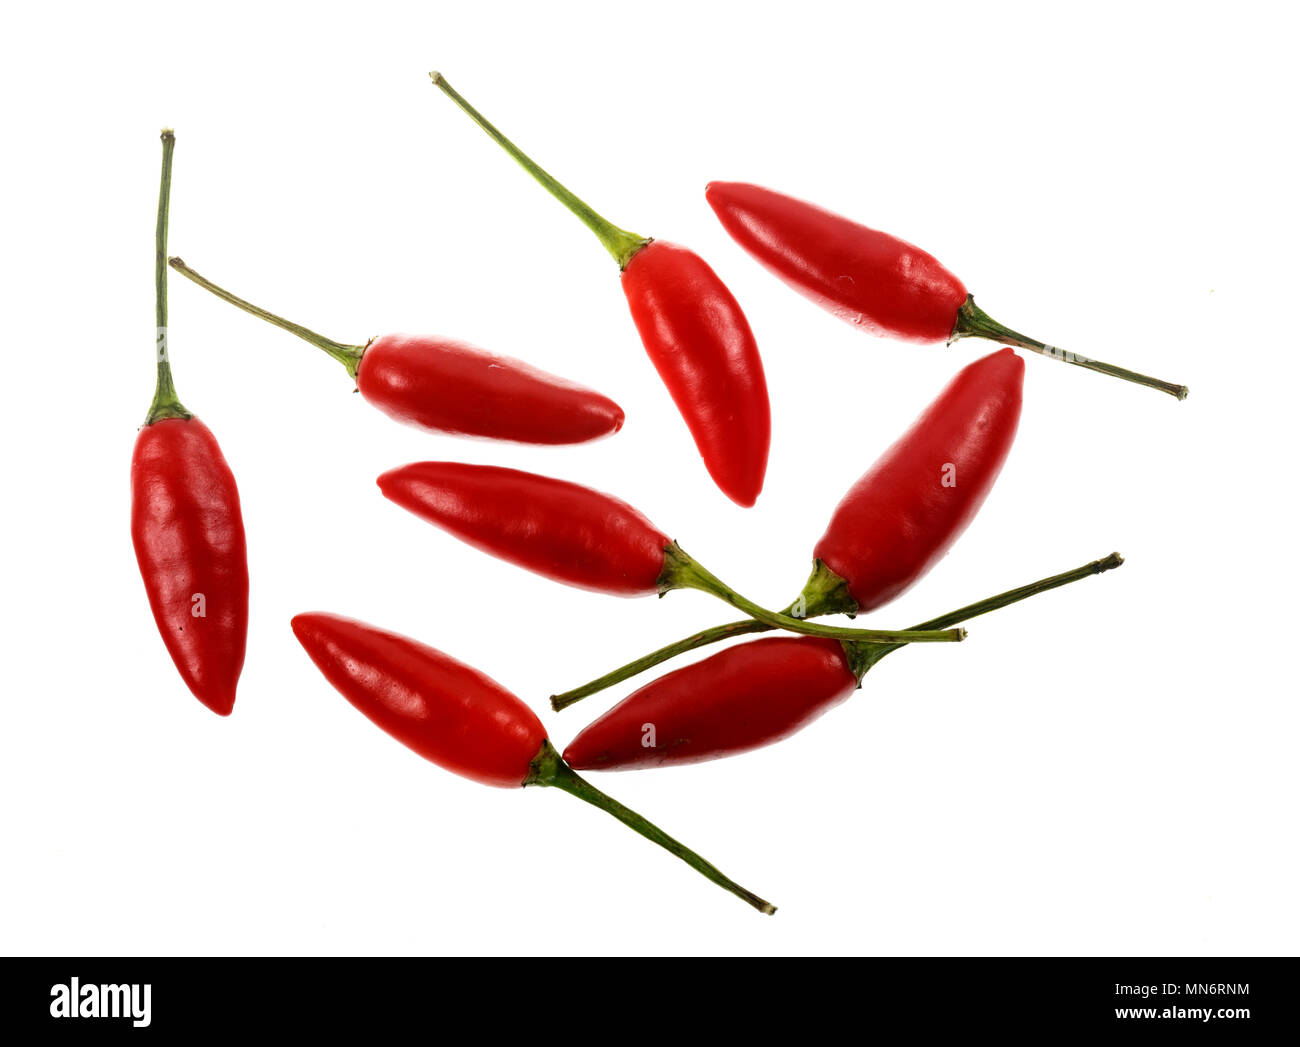 The Birds Eye, or Thai Chili, is a small sized chili pepper cultivar of the species Capsicum annuum. It is very hot (piquant) with a floral aroma, com - Stock Image